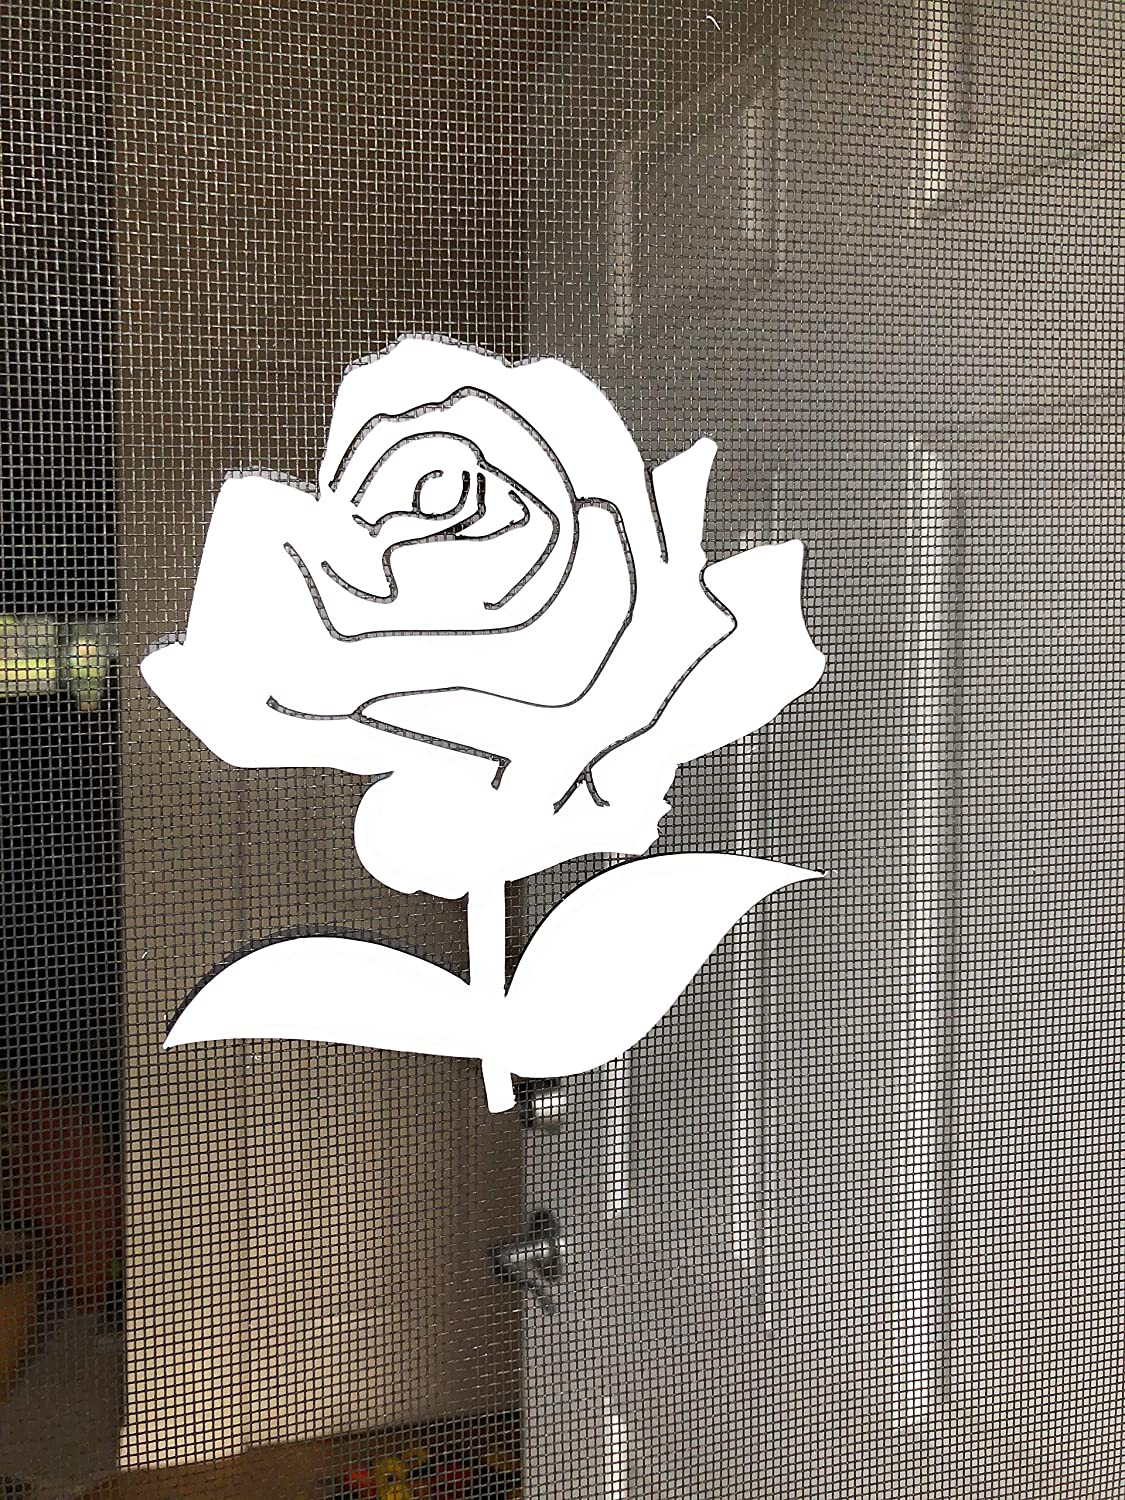 for Non-Retractable Screens Helps to Stop Walking into Screens DCentral Rose Screen Magnet Double-Sided Decor; Multipurpose Size 5 x 5 Covers Small tears in Screens